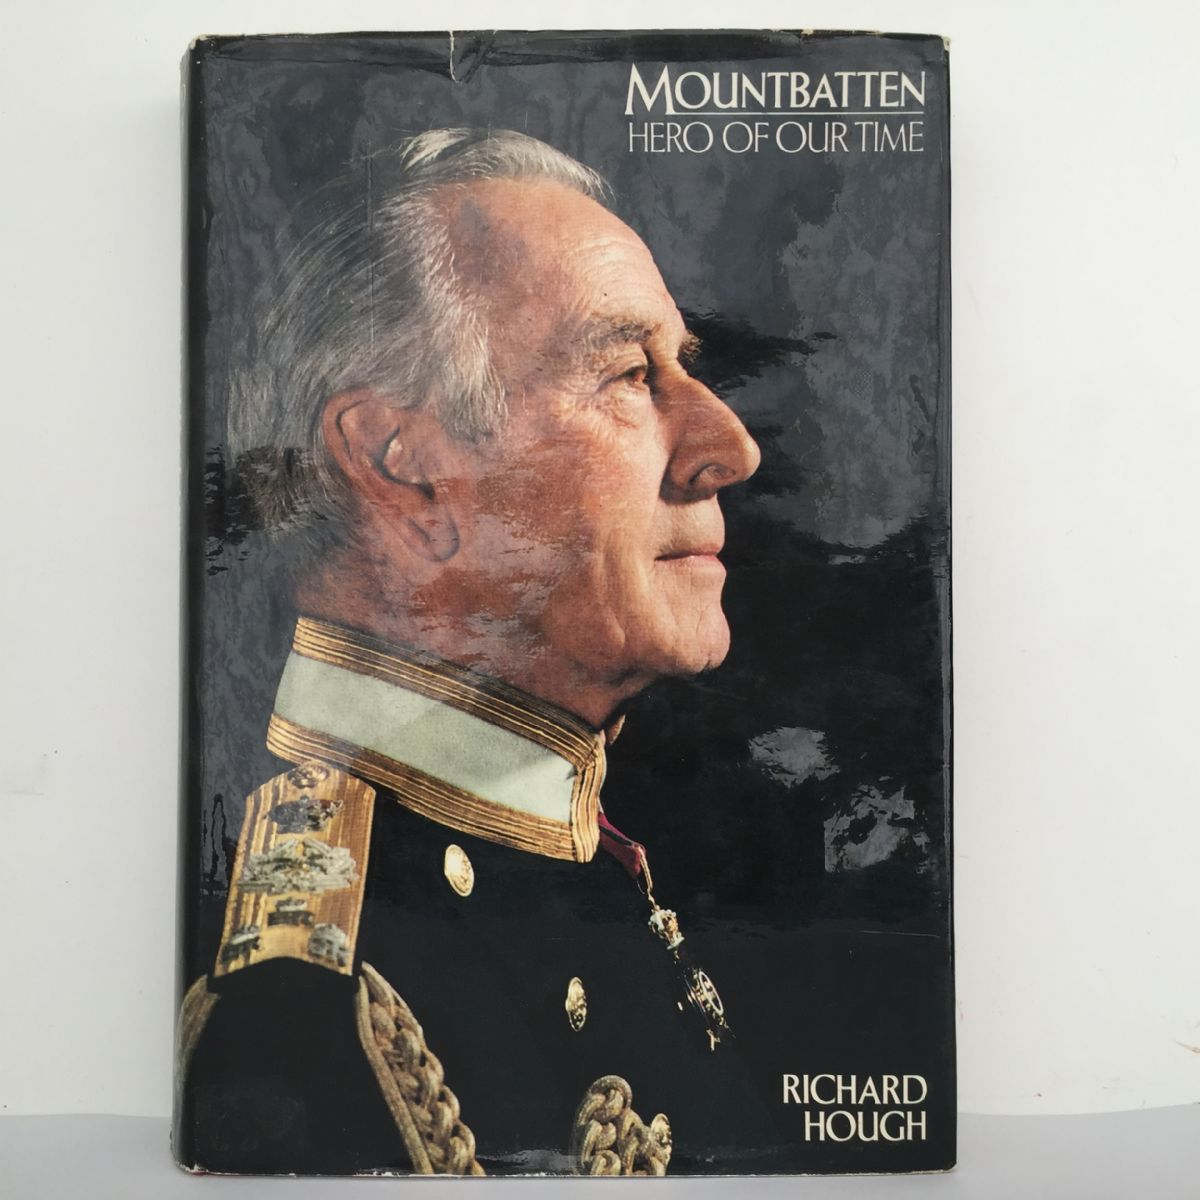 Mountbatten: Hero of Our Time